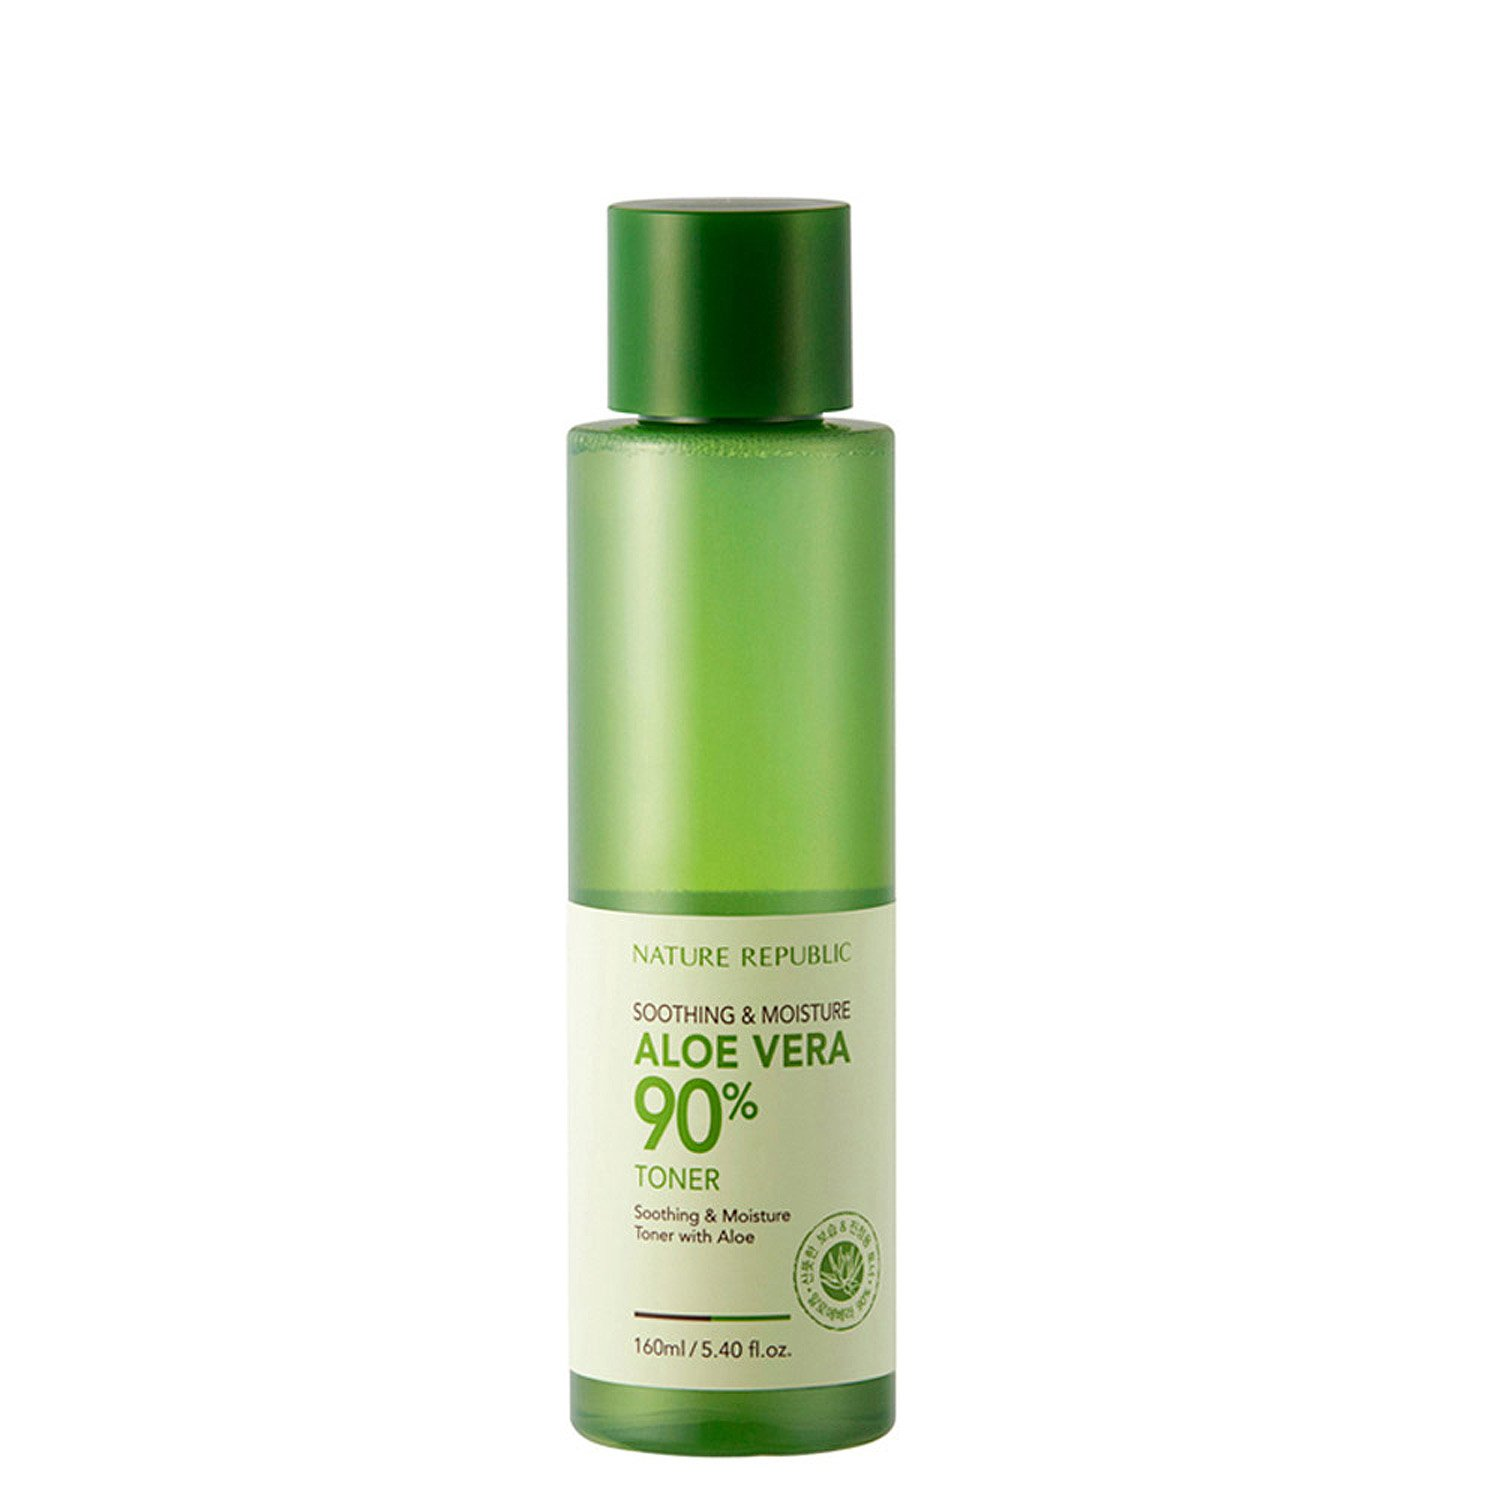 Buy Nature Republic Soothing Moisture Aloe Vera 90 Toner 160ml Jar Gel 300 Ml 53oz Online At Low Prices In India